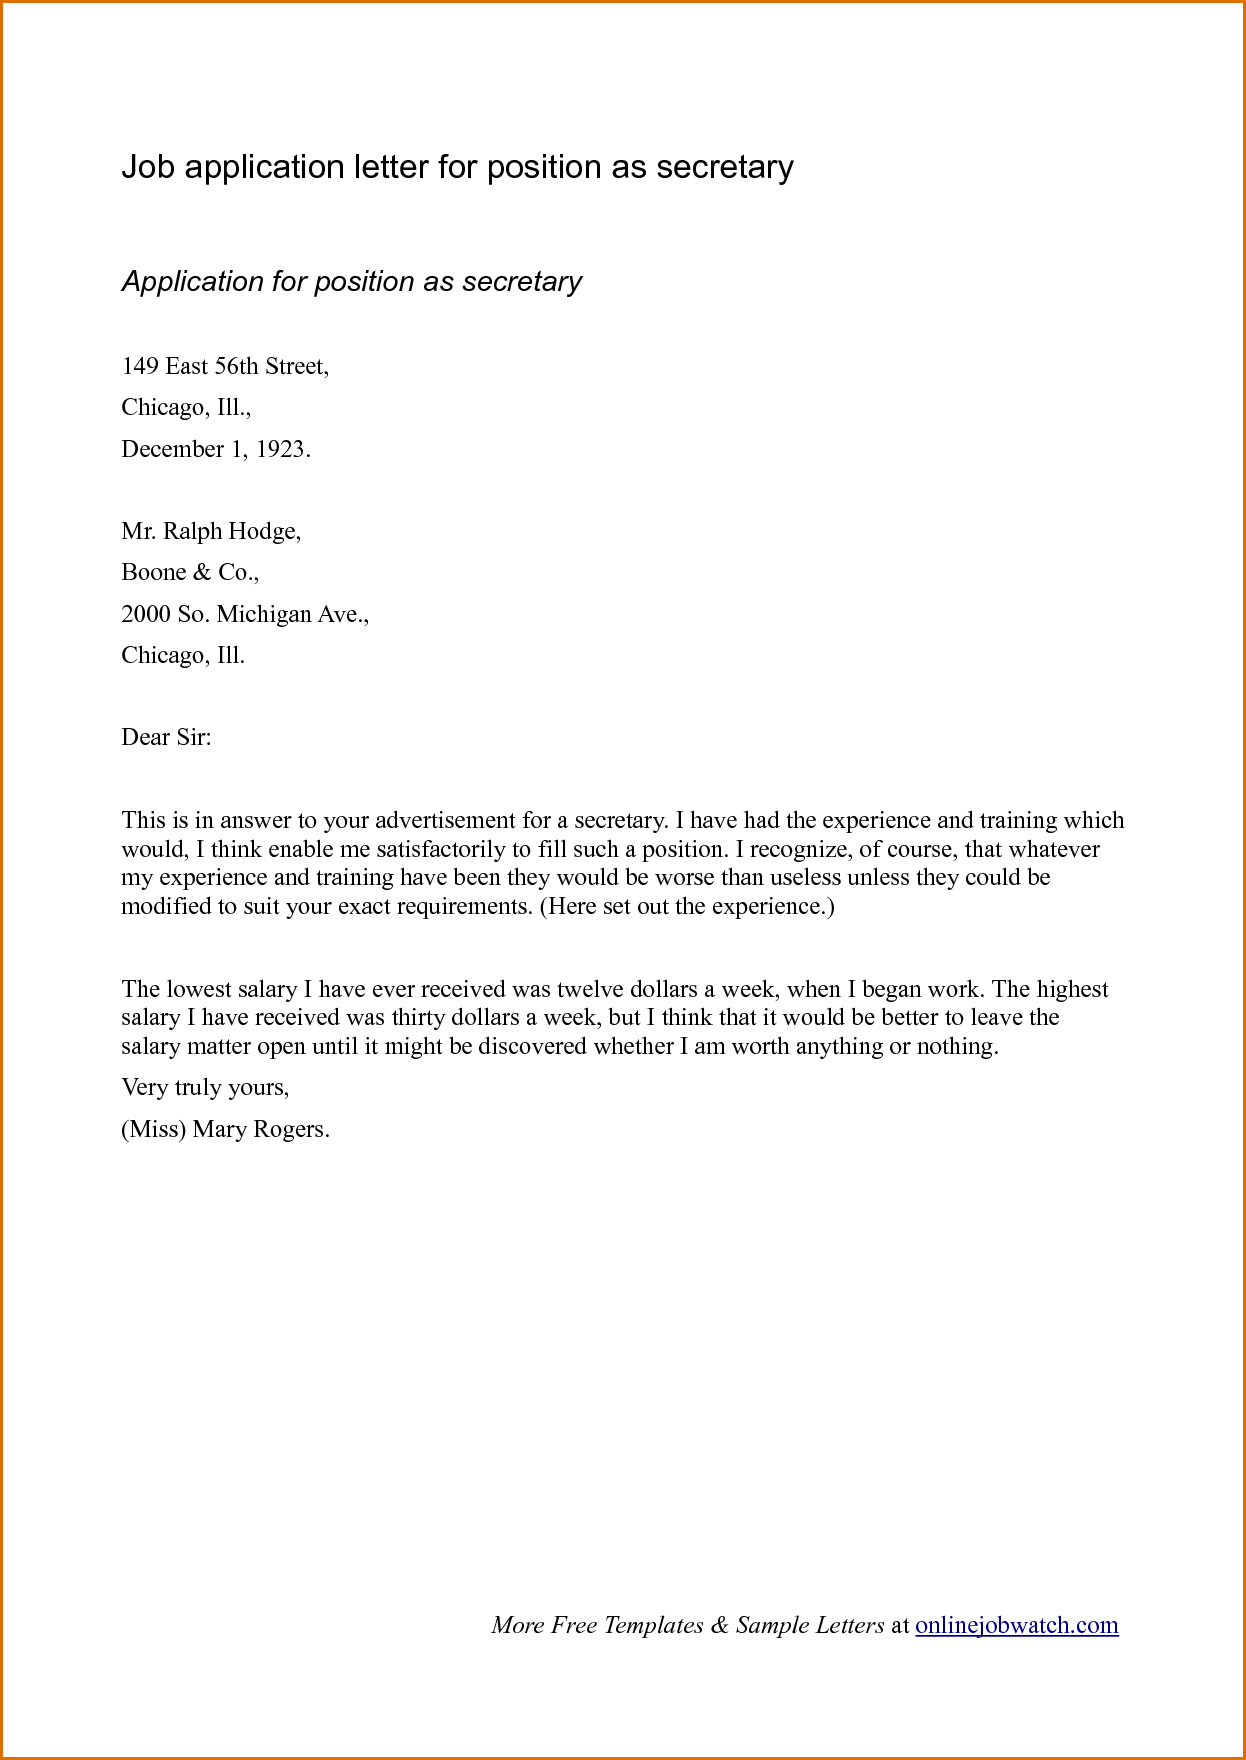 Simple Book Cover Letter ~ Sample cover letter format for job application